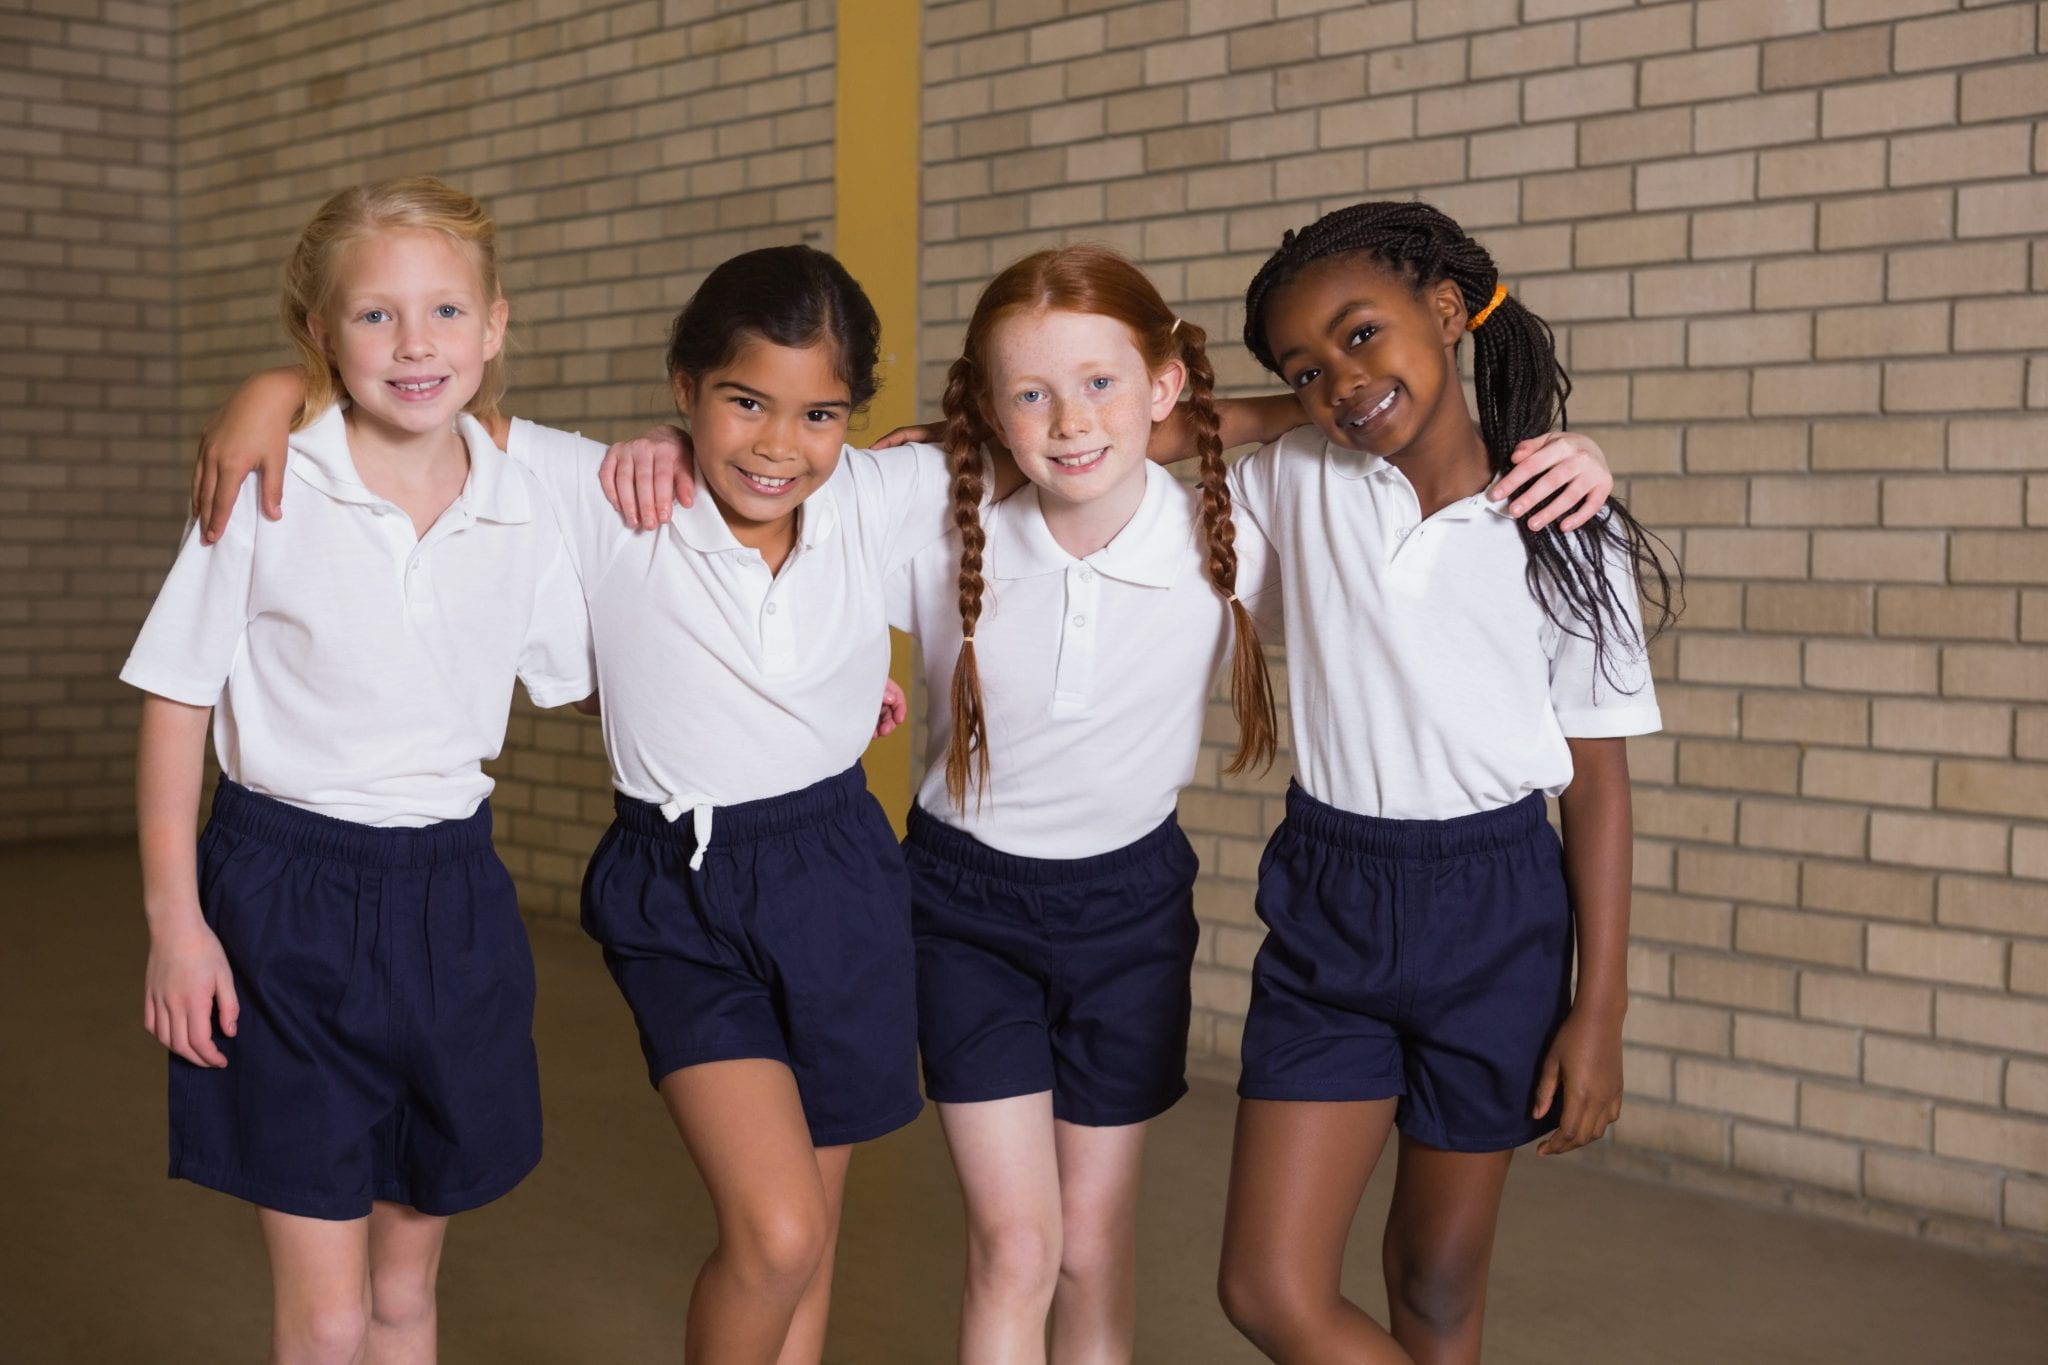 physical education in schools A survey of district/county office of education perceptions and practices  schools play an important role in influencing student physical activity behaviors  and.